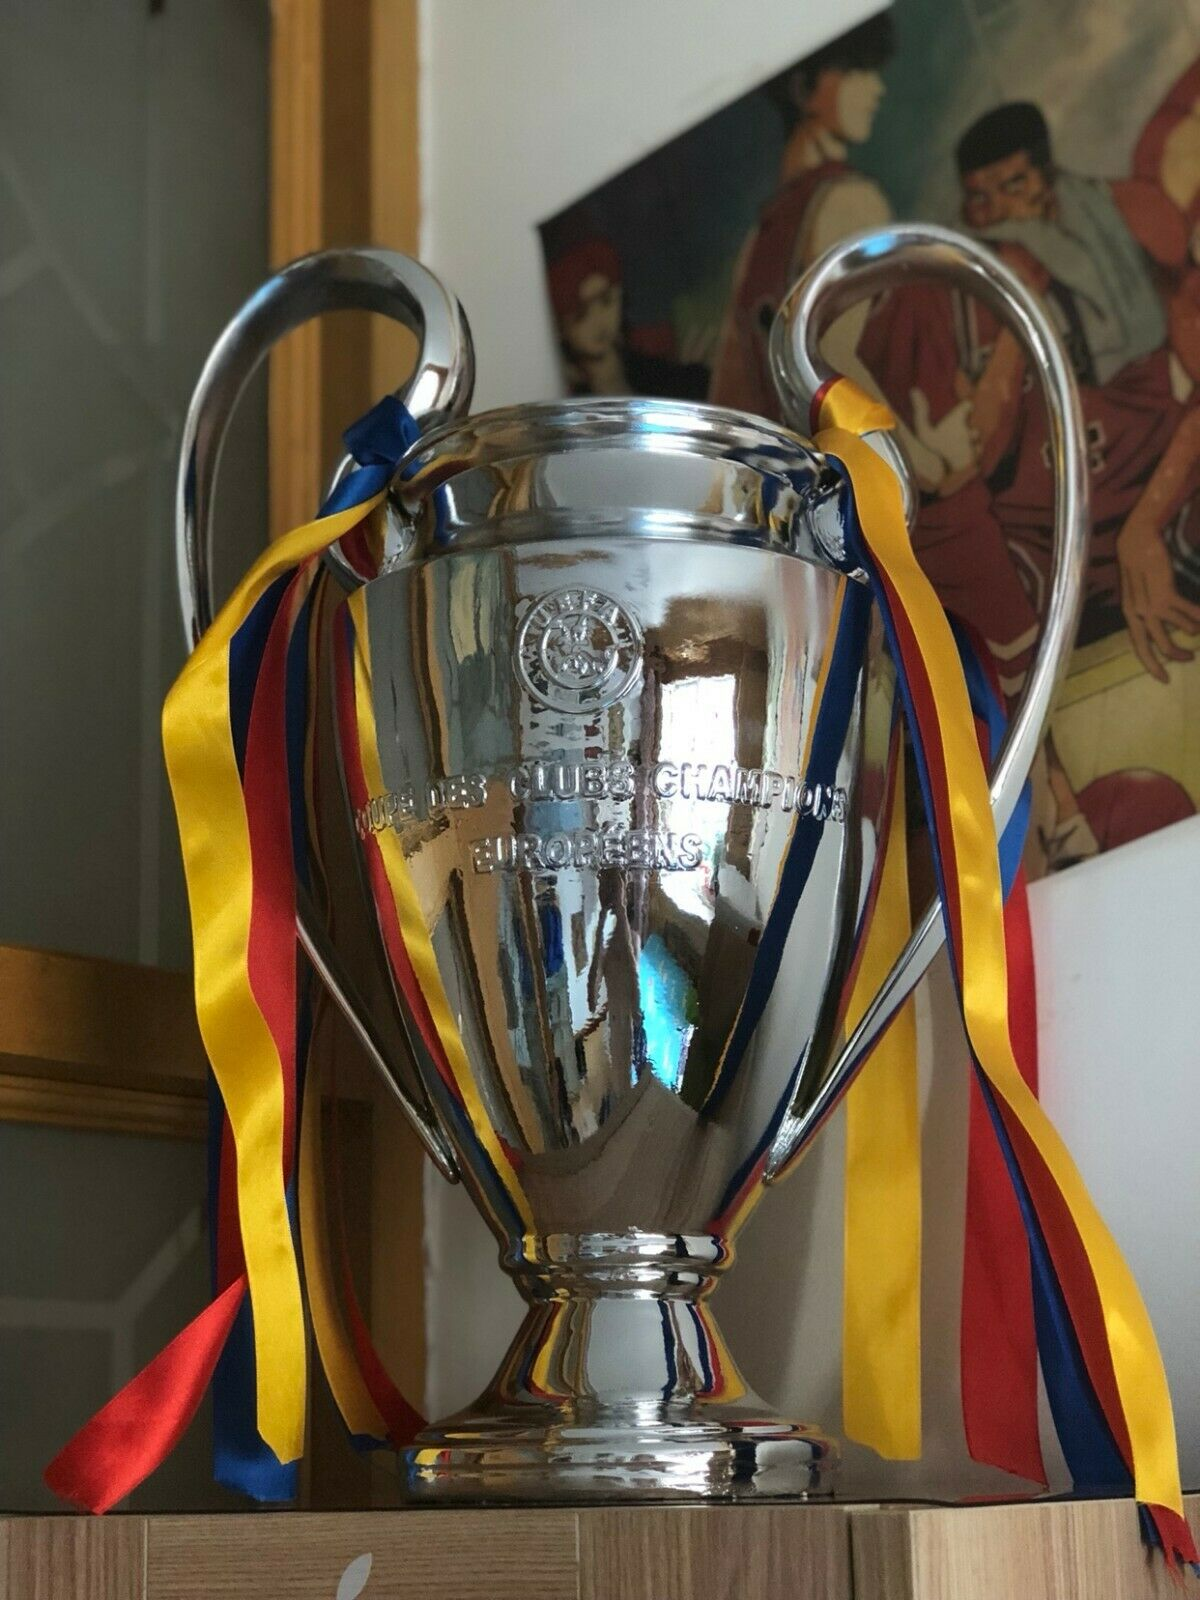 2017 uefa champions league trophy 1 1 replica 17inches 43cm height for sale online ebay 2019 uefa champions league trophy 1 1 all sizes liverpool replica fast shipping